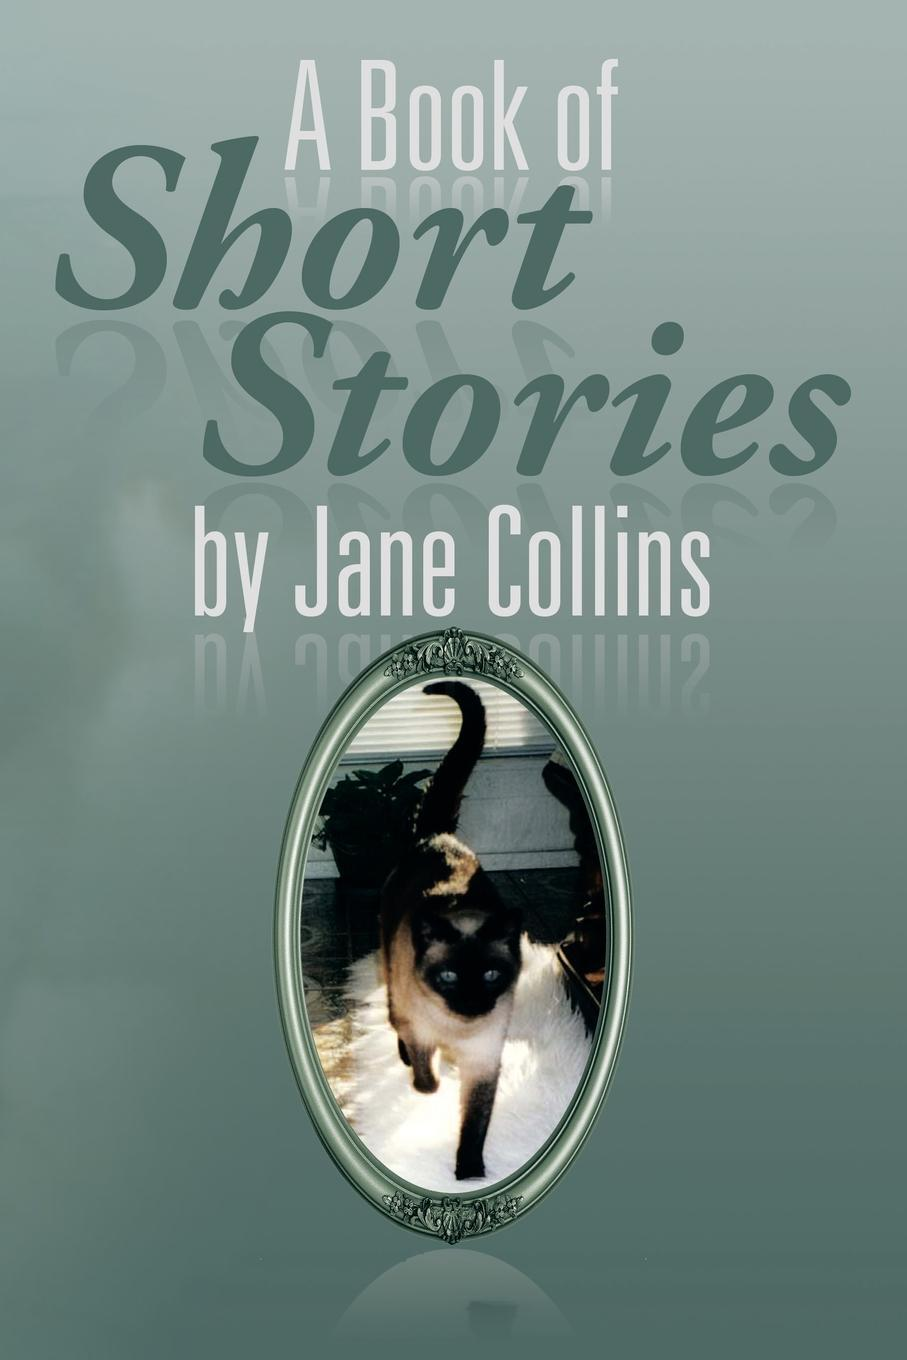 Книга A Book of Short Stories by Jane Collins. Jane Collins